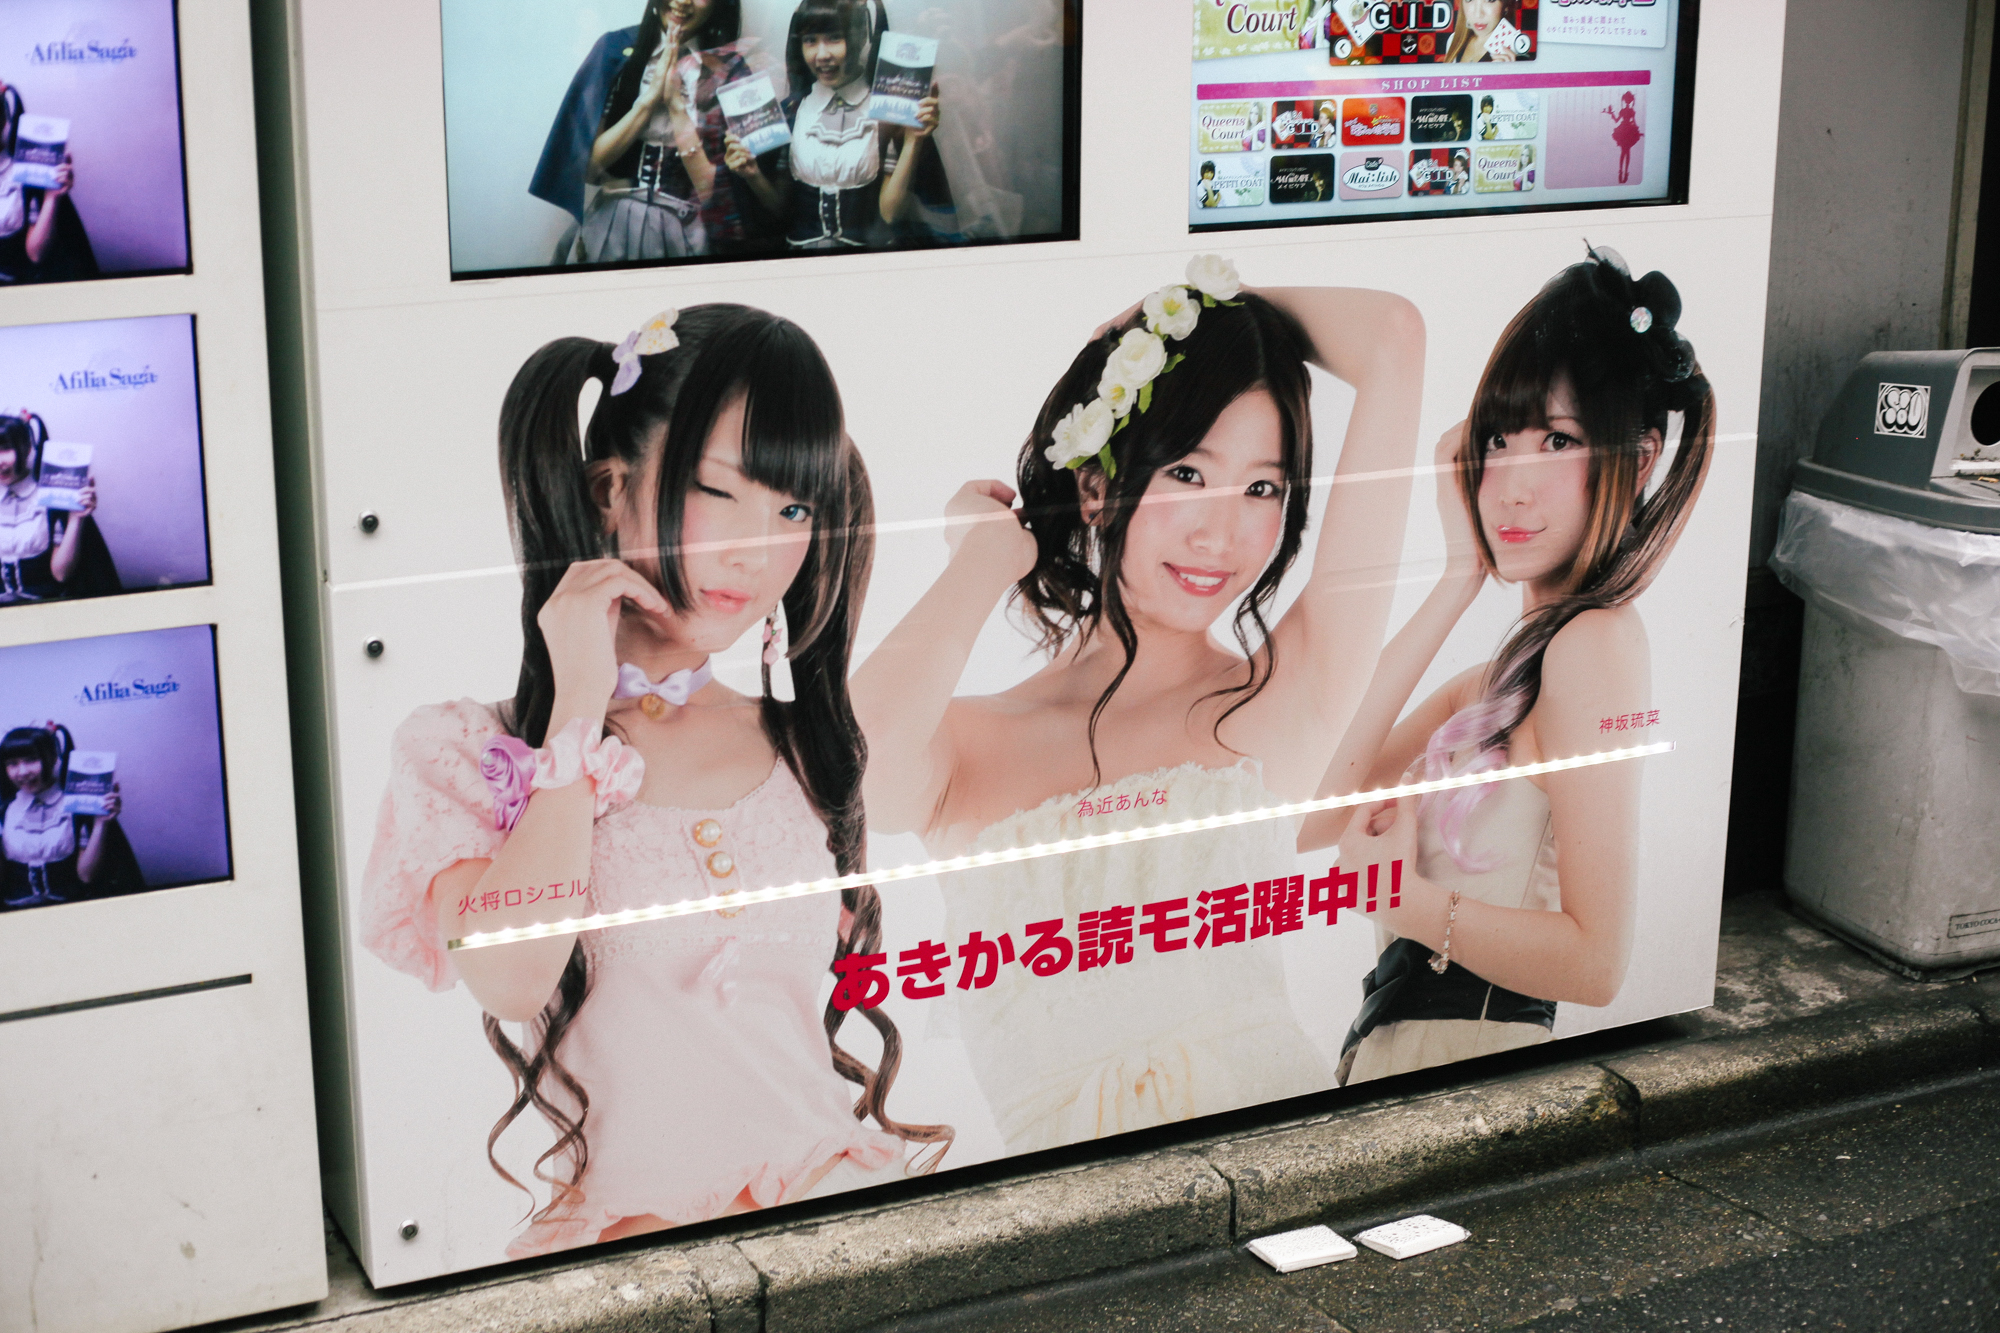 Sex sells a lot more in Japan than in Portland and with the amount of strip clubs we have, that's saying something.